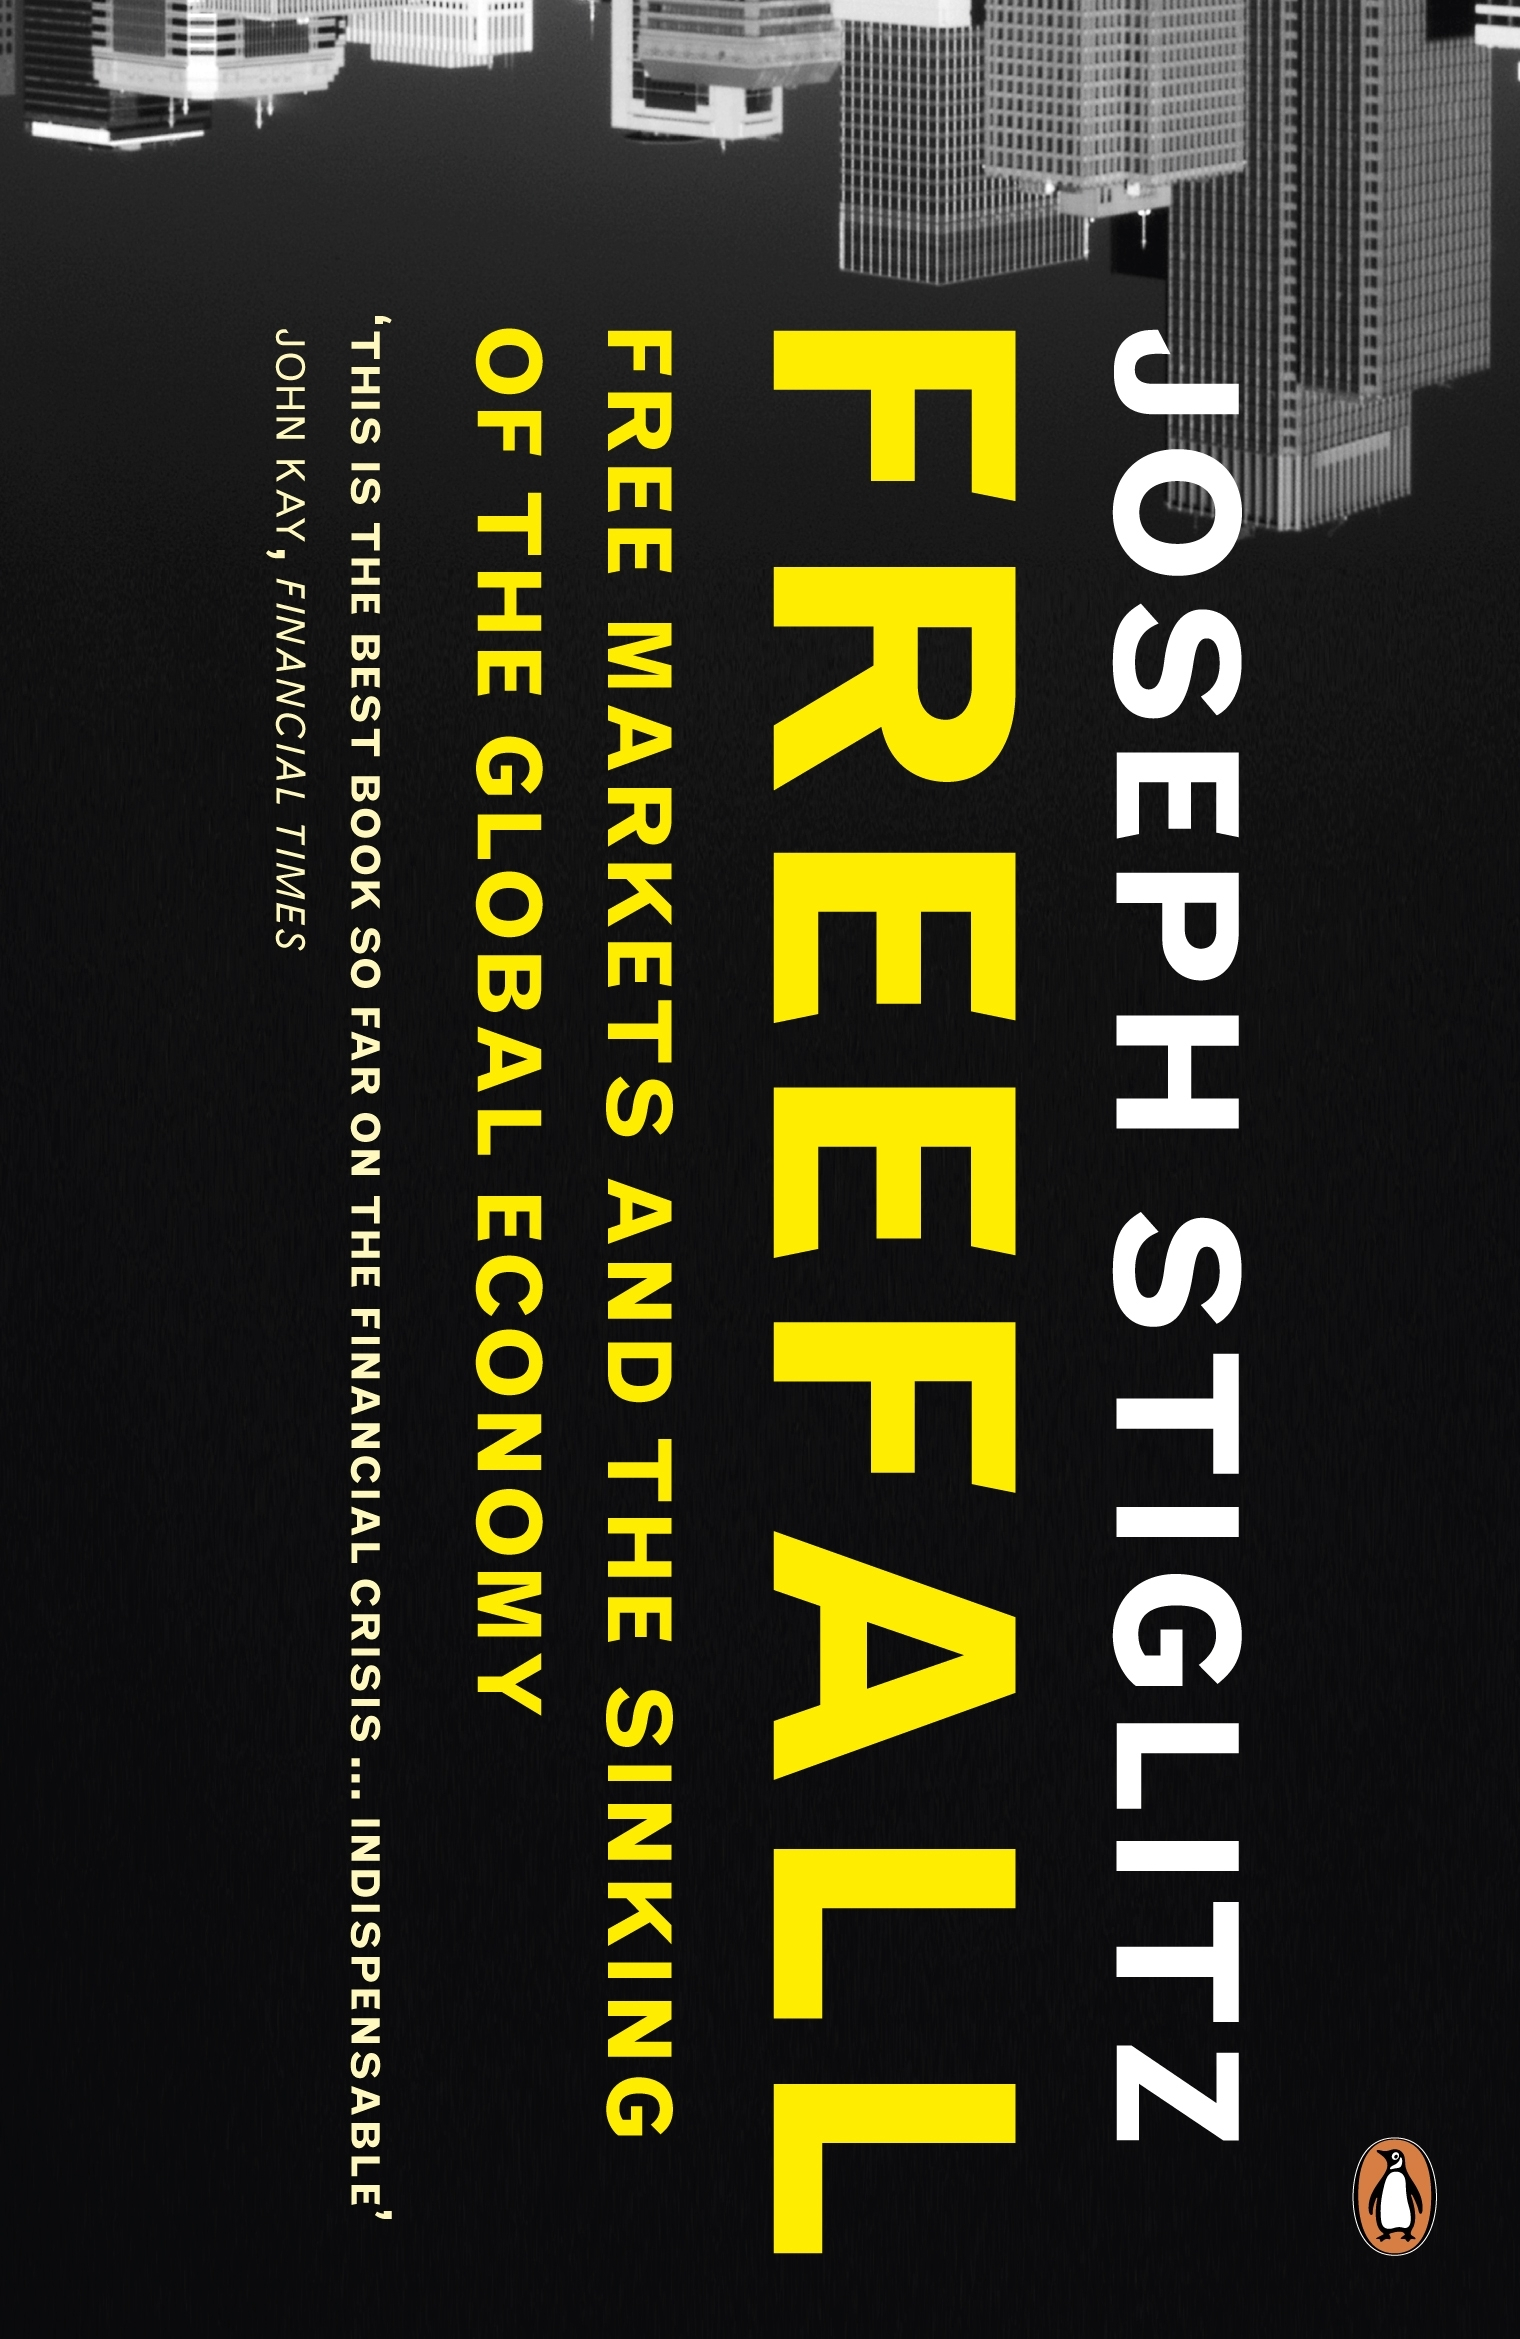 freefall by joseph stiglitz His latest offering, freefall: america, free markets, and the sinking of the world economy frays when he claims the origins of the current financial mess lie in the economic liberalization which began in the late 1970s.